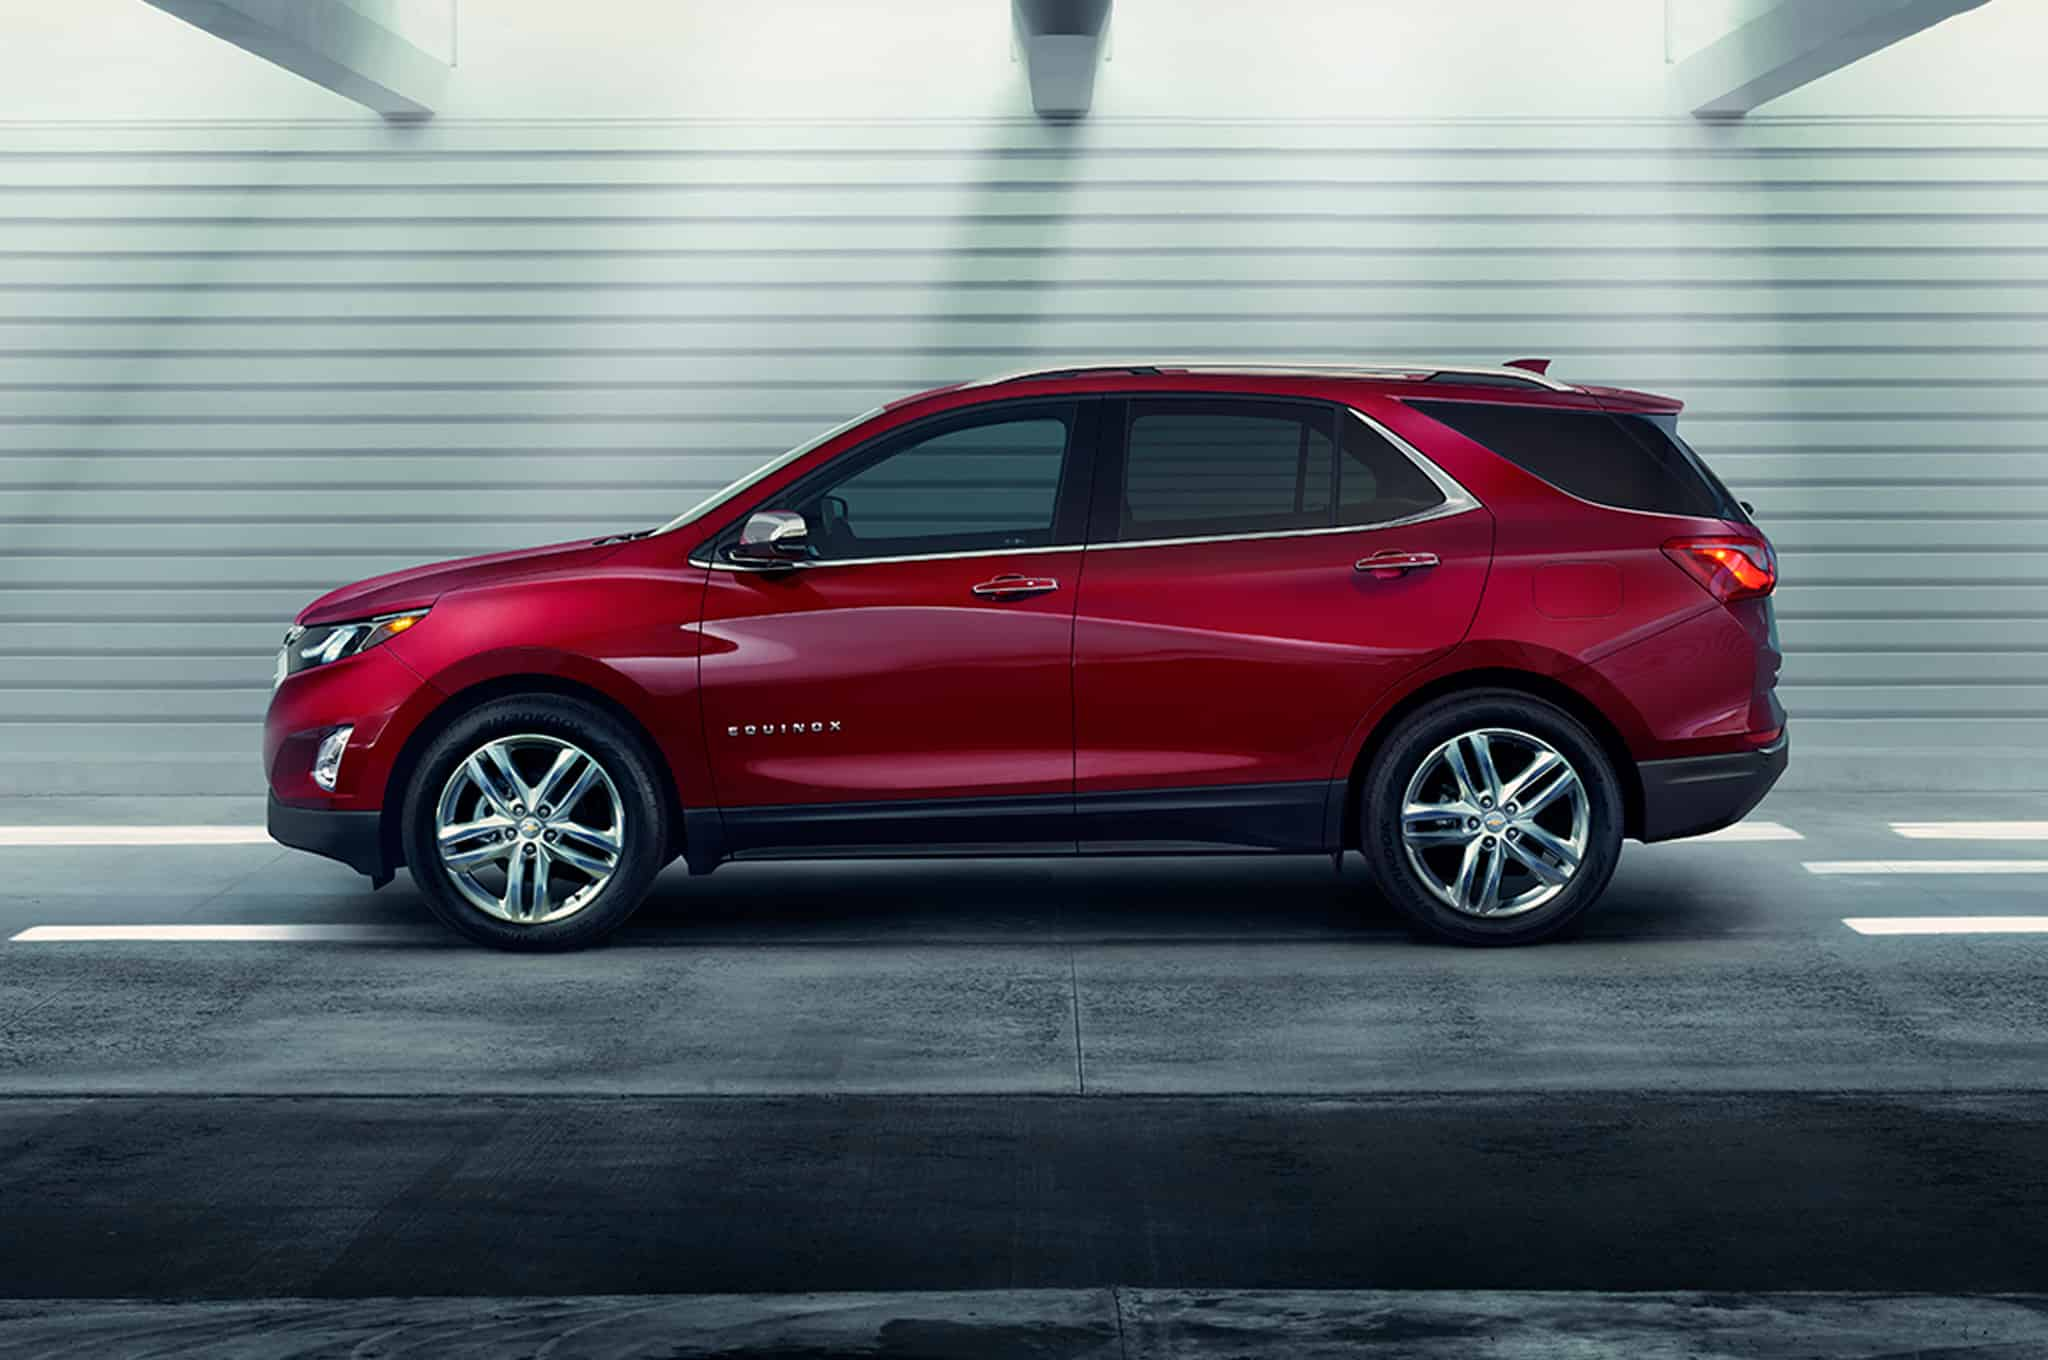 The best Chevy SUV is the Chevrolet Equinox.